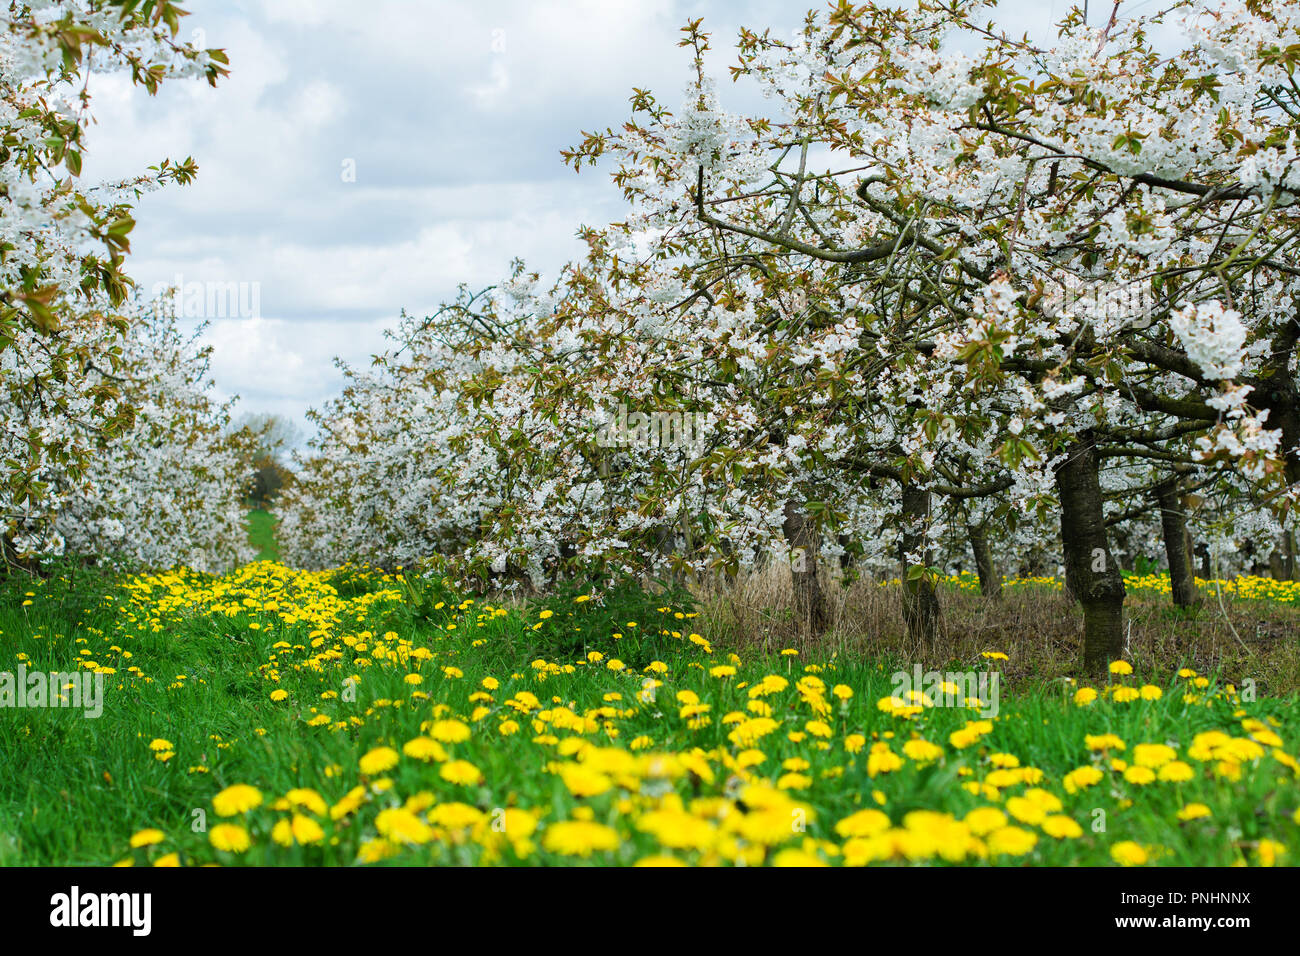 Beautiful Cherry Orchard With White Flowers Trees In A Row Sussex